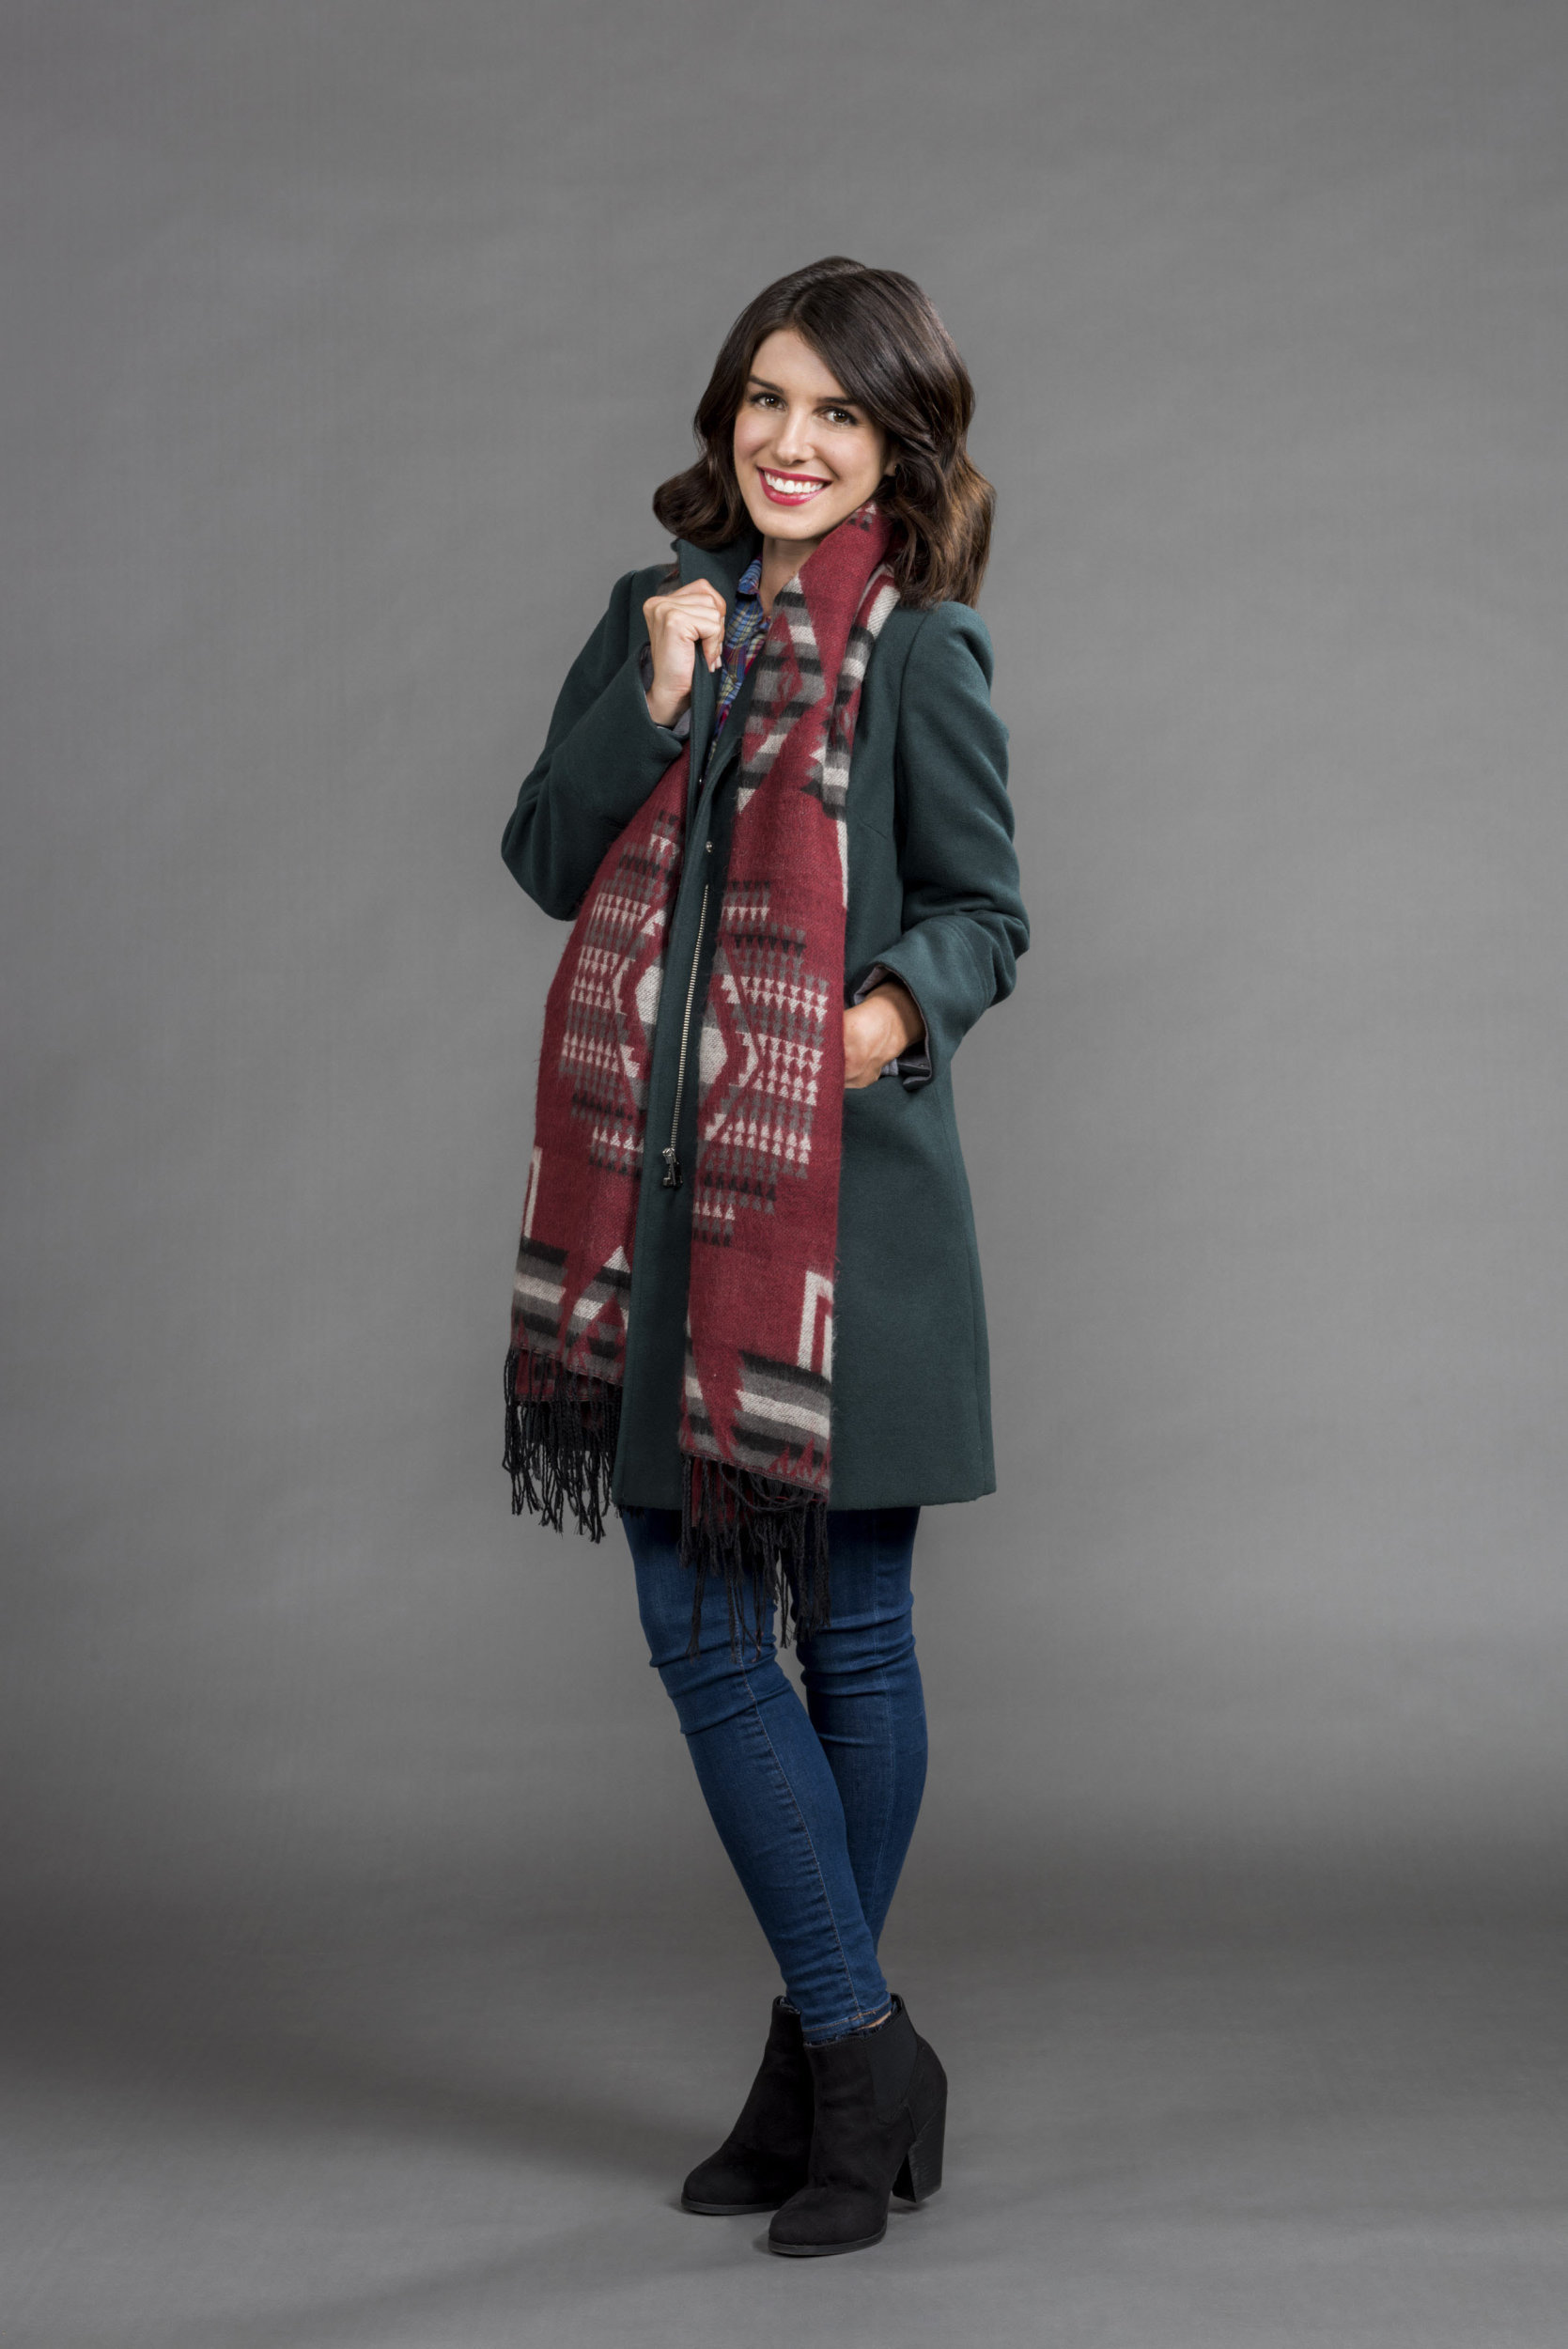 Christmas Incorporated Cast.Shenae Grimes Beech As Riley In Christmas Incorporated